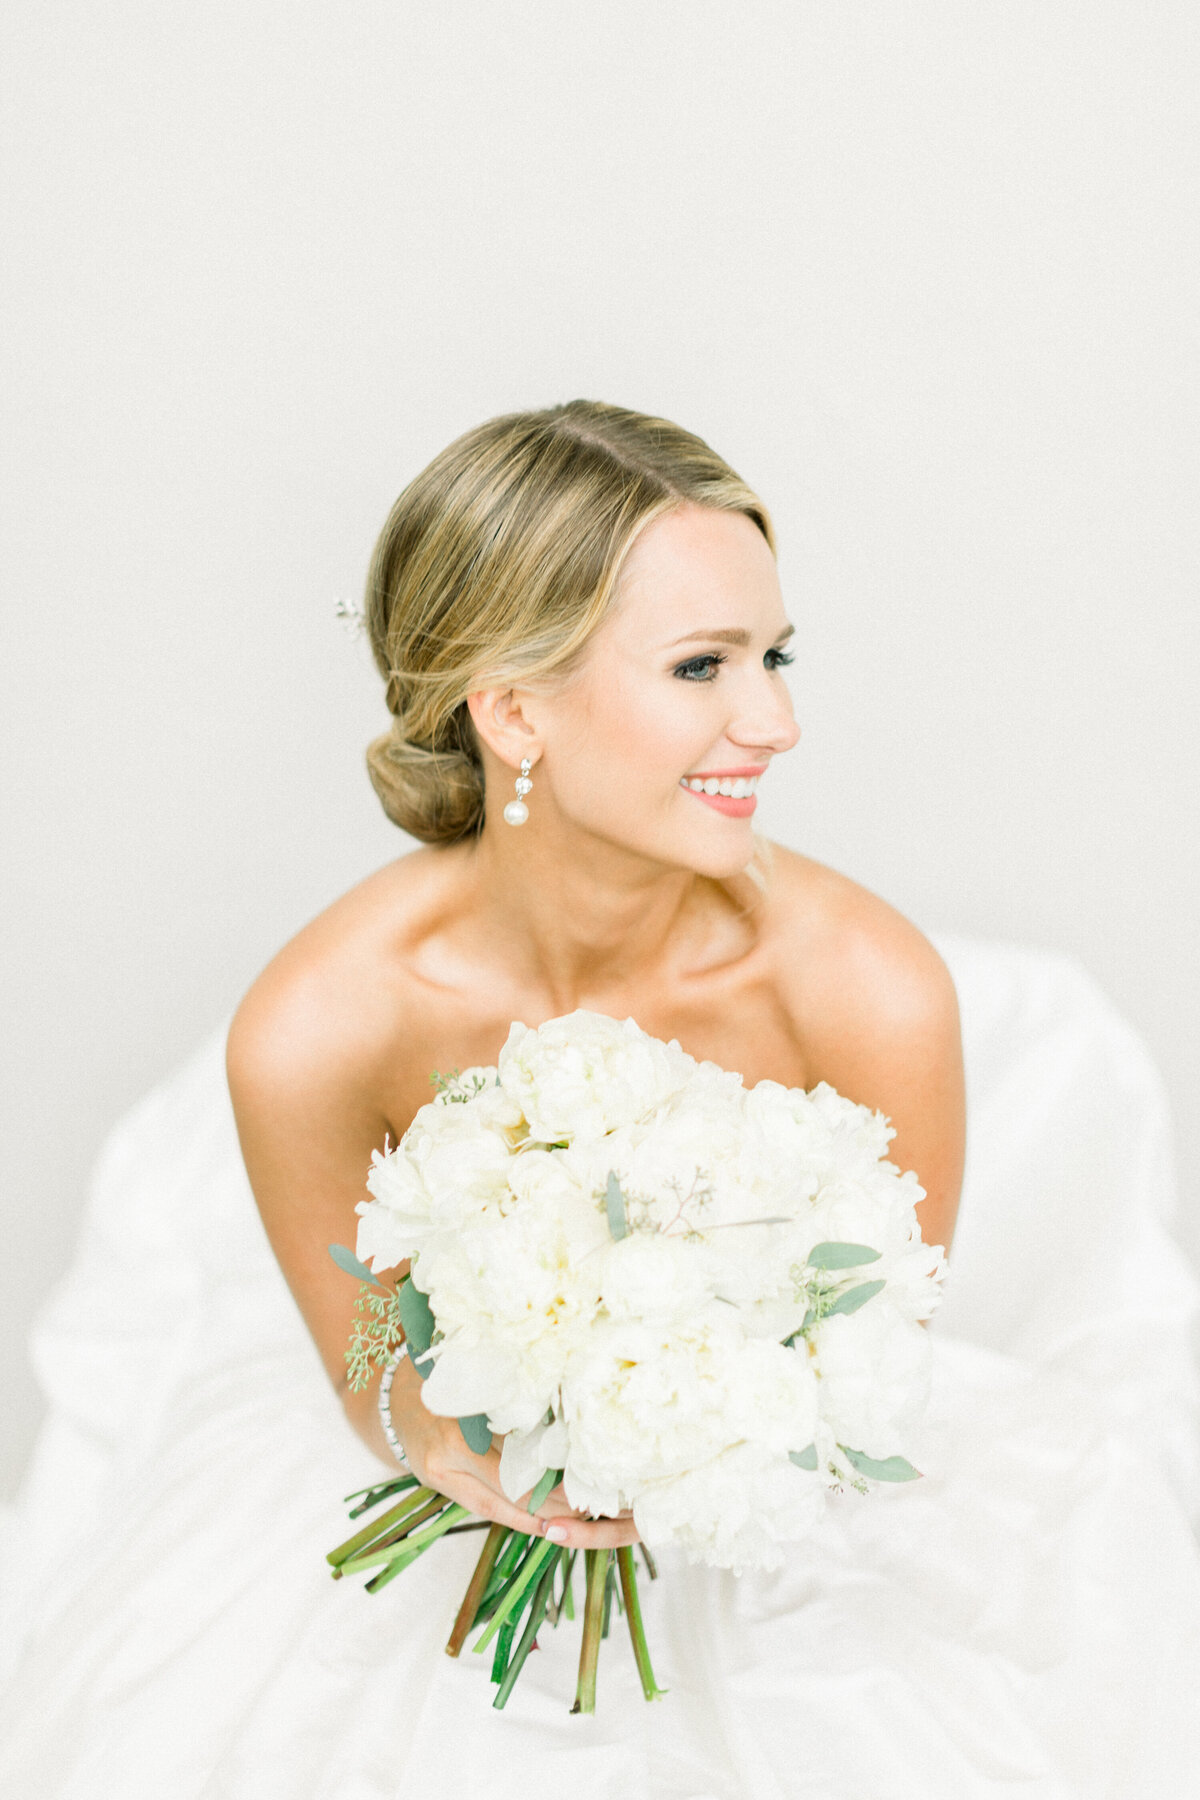 Minnesota Bride, Minnesota wedding photographer, Minneapolis wedding photographer, Wedding Dress, trish Allison photography, trish allison photography weddings, Light and airy photographer, Minnesota photogrpaher light and airy, Lafayette Wedding